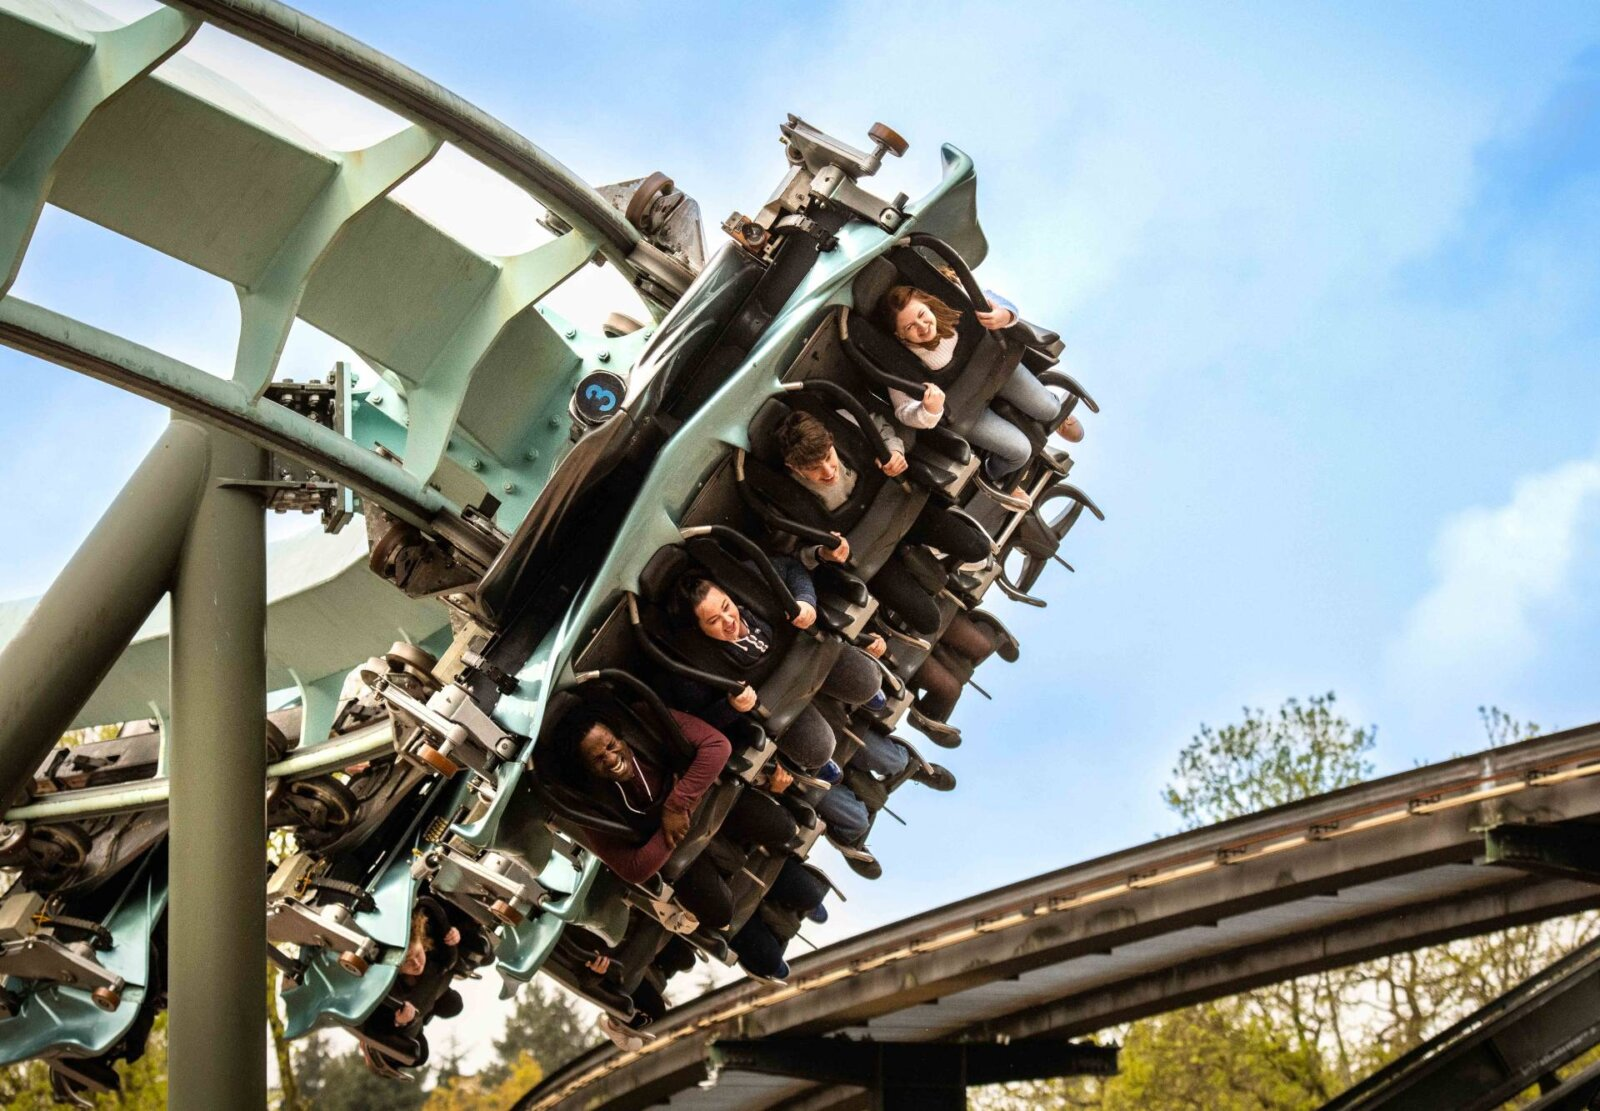 Alton Towers is giving away 30,000 free tickets to workers with specific jobs, The Manc